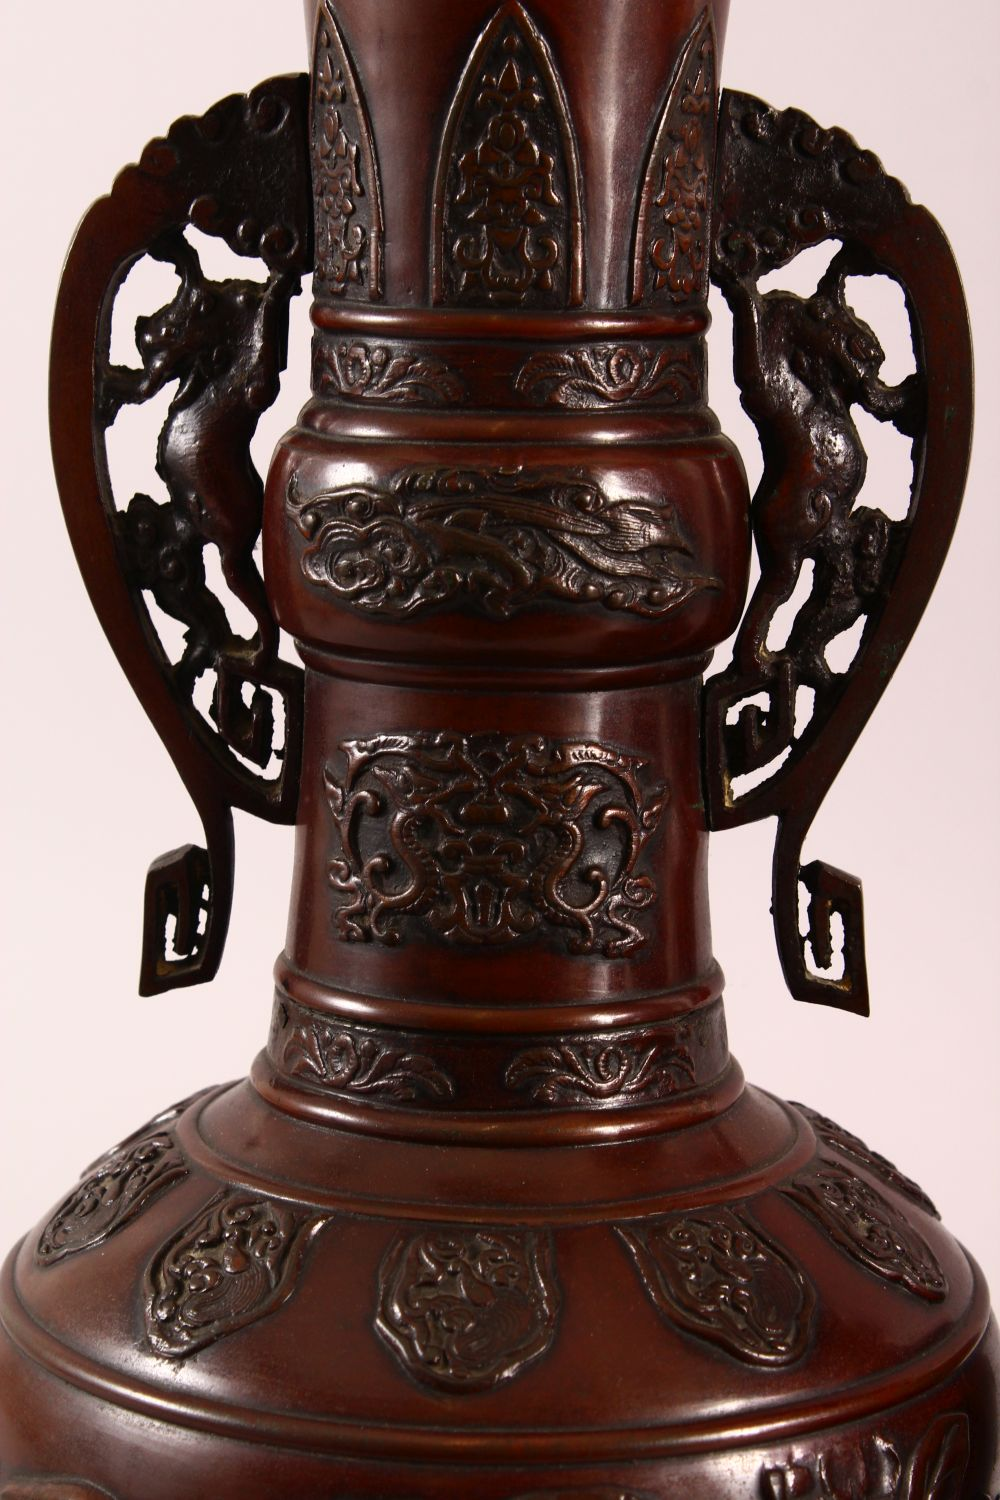 A PAIR OF JAPANESE RELIEF BRONZE VASES, with twin handles, relief birds and flora decoration, 40cm - Image 2 of 7